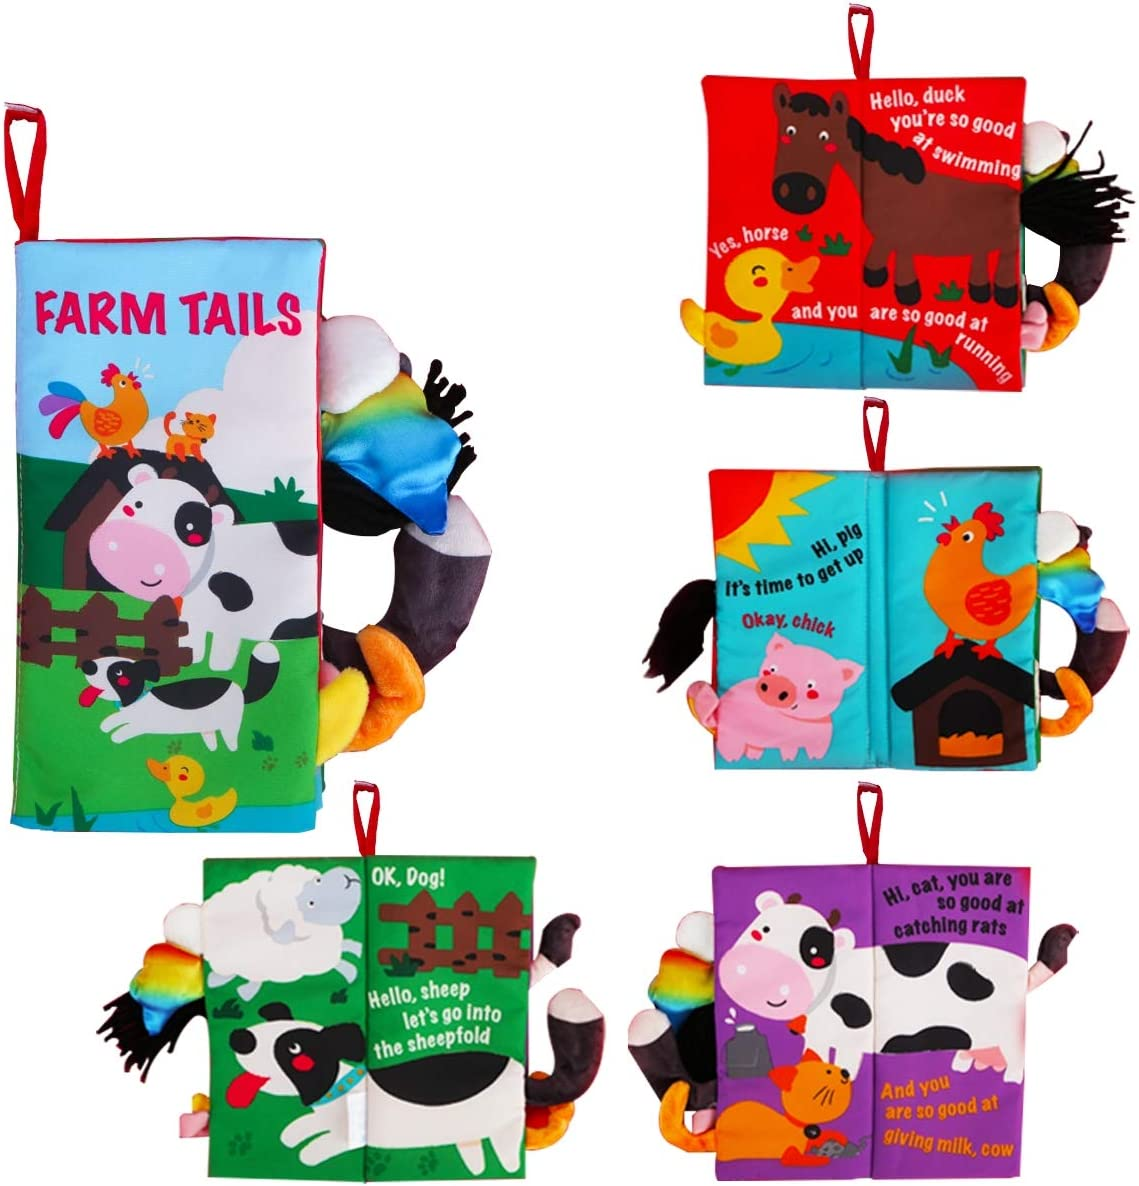 beiens Soft Baby Cloth Books, Touch and Feel Crinkle Books, for Babies, Infants & Toddler Early Development Interactive Toys, Baby Girl & Baby Boy Gift (Farm Tails)